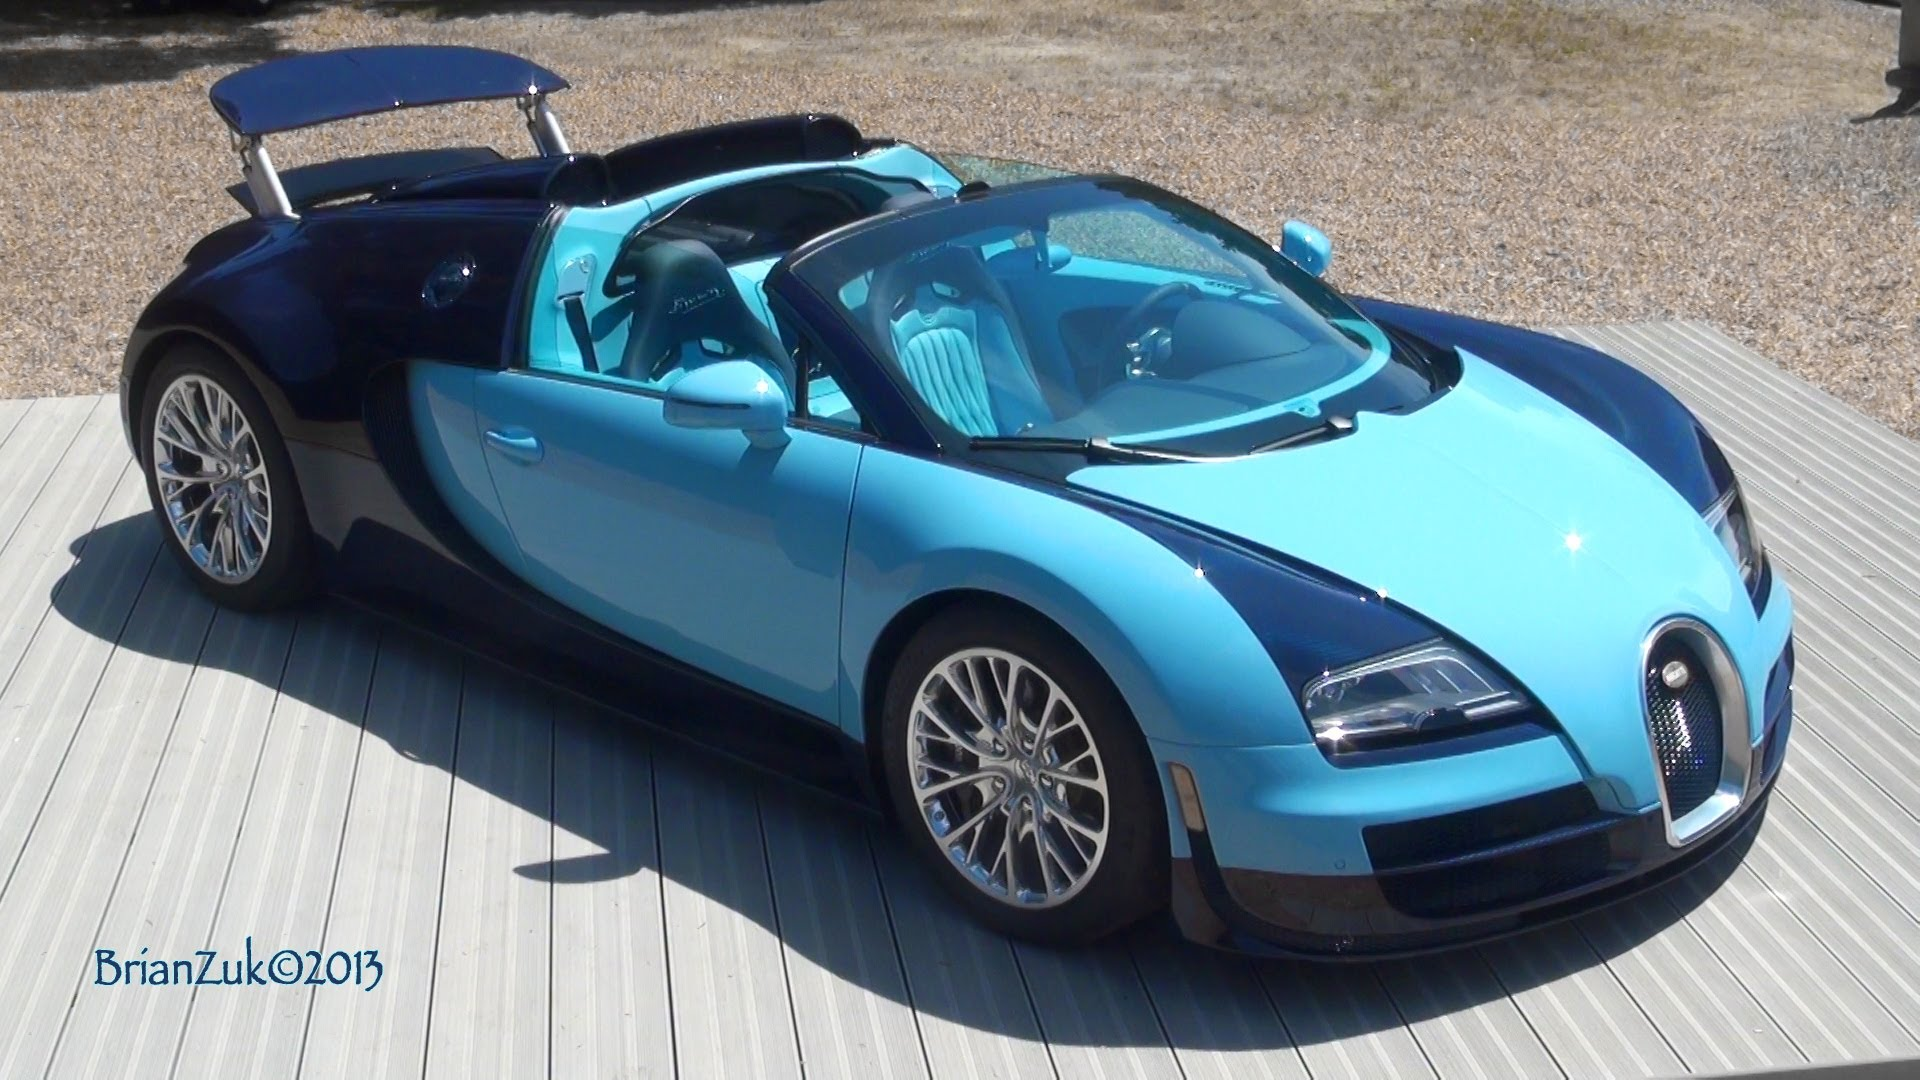 2019 Bugatti Veyron Jean Pierre Wimille Car Photos Catalog 2018